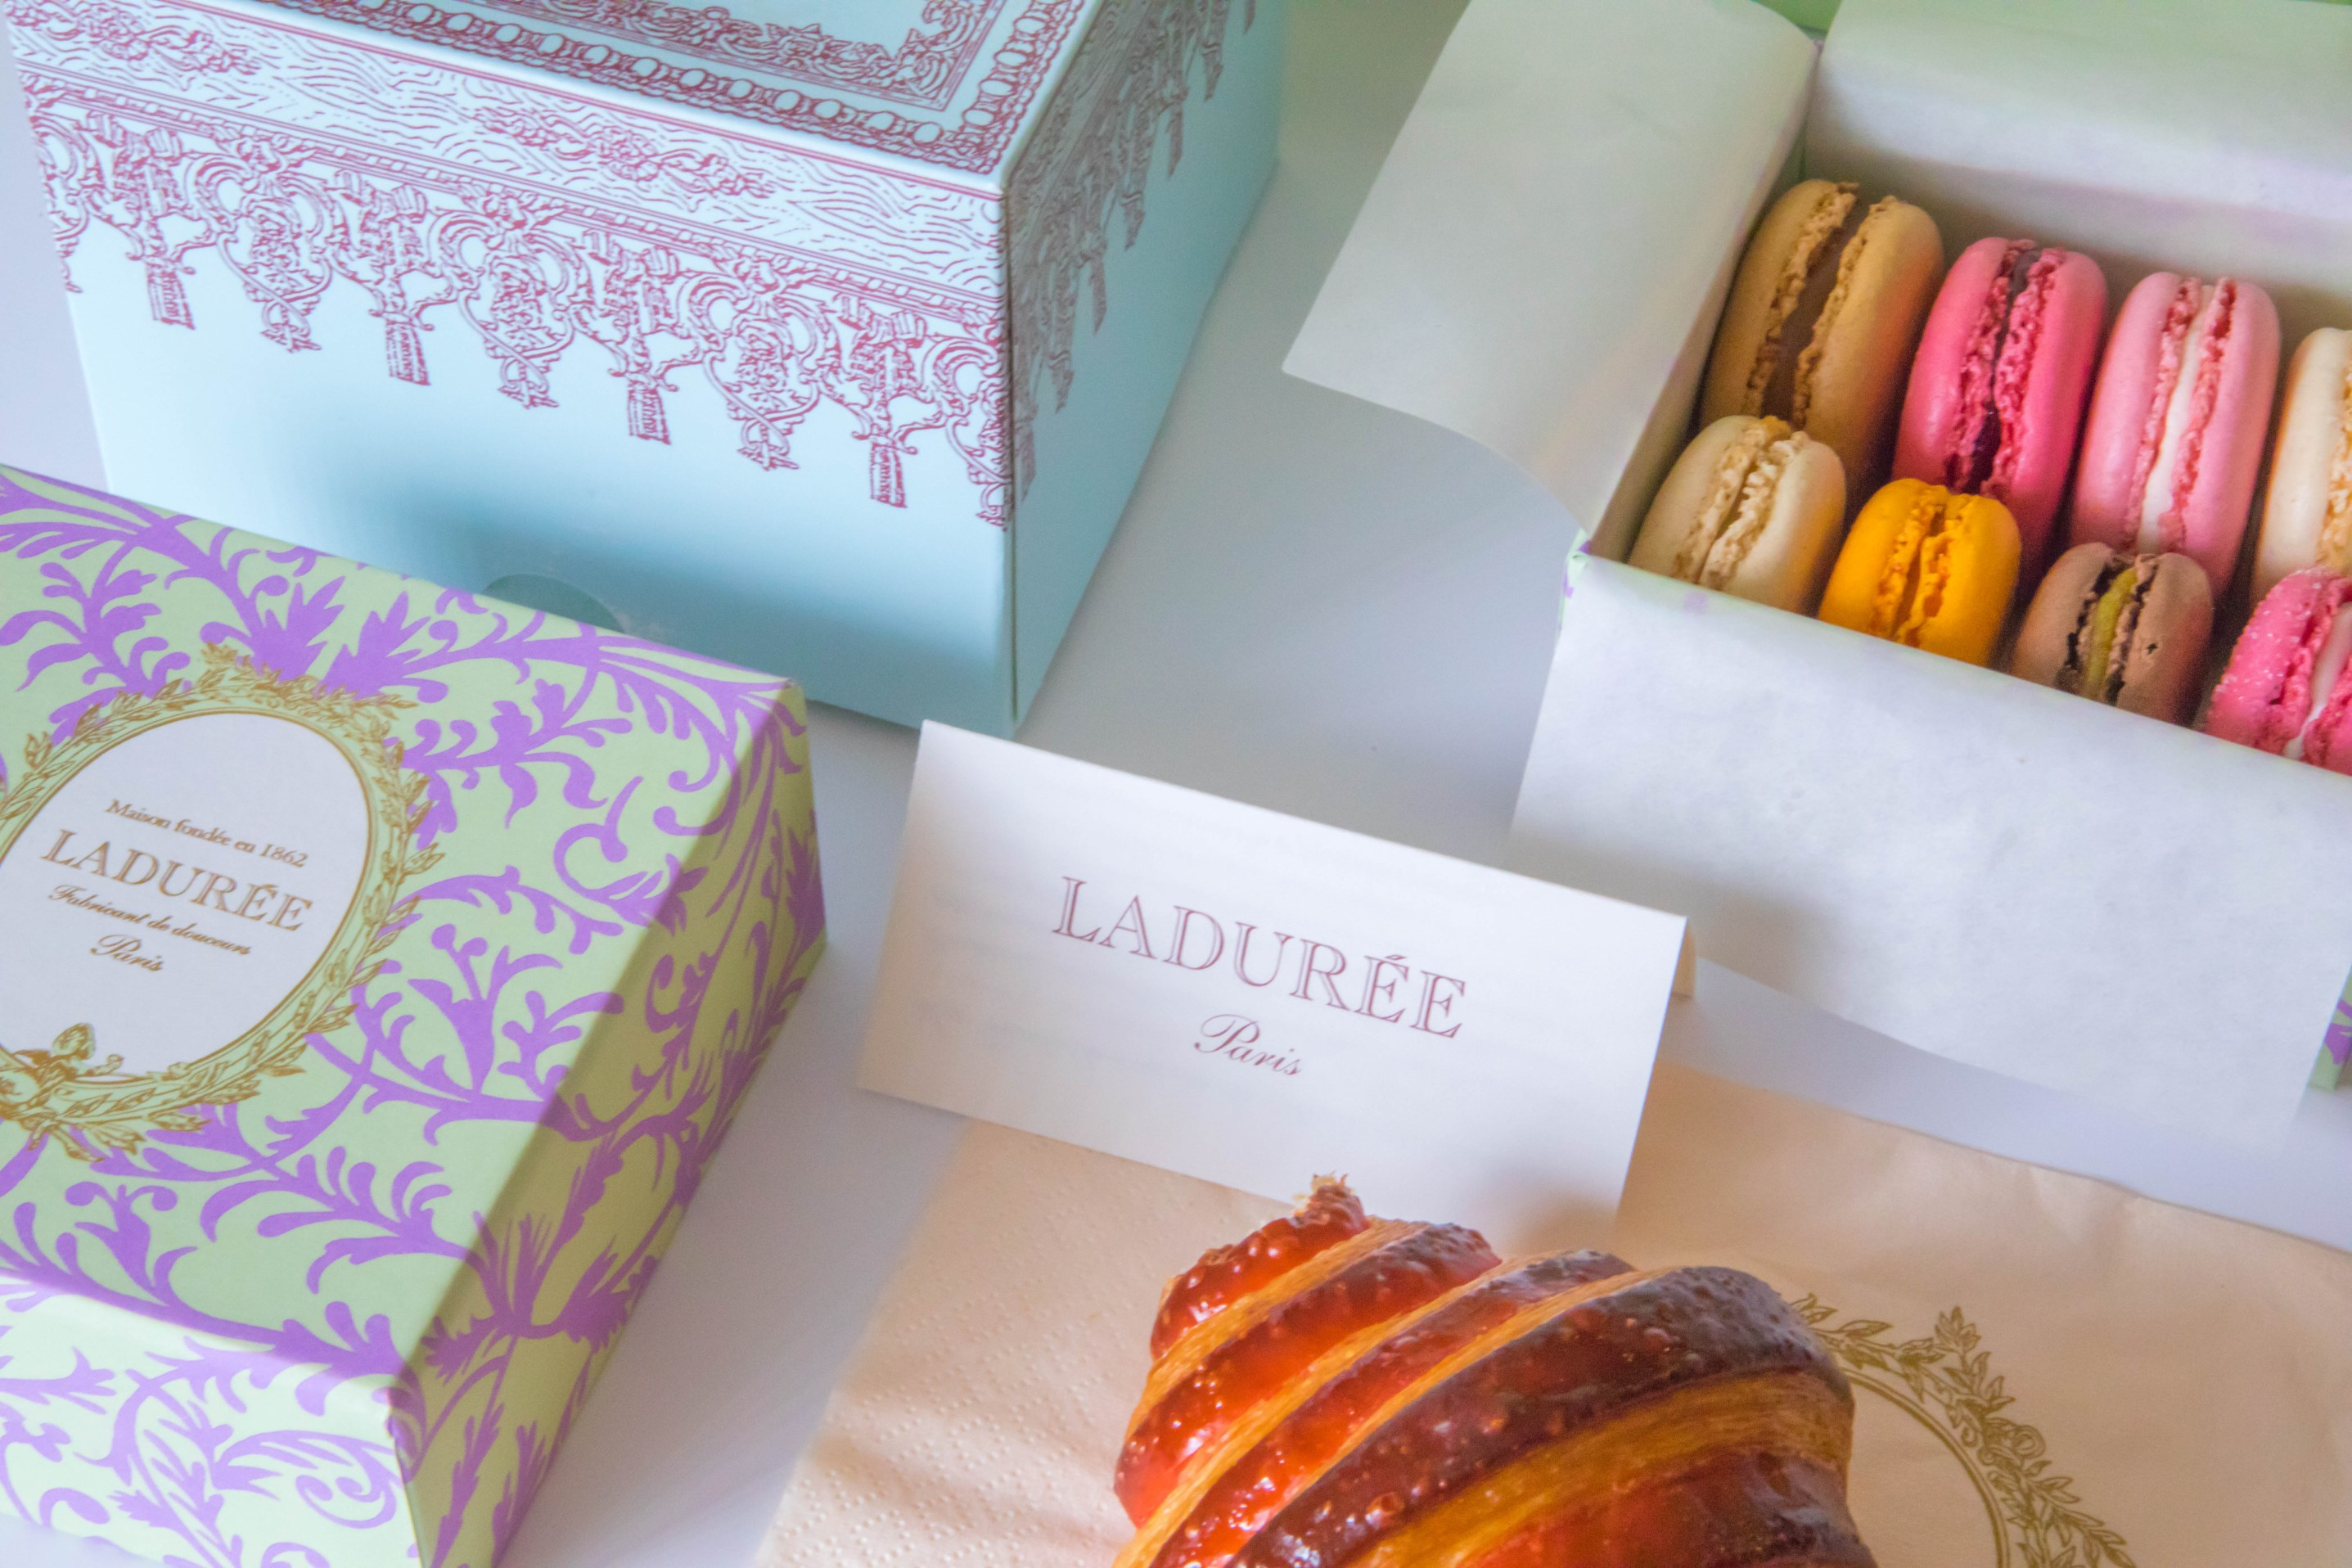 Laduree Macarons from Laduree Bakery in Soho New York City Paris